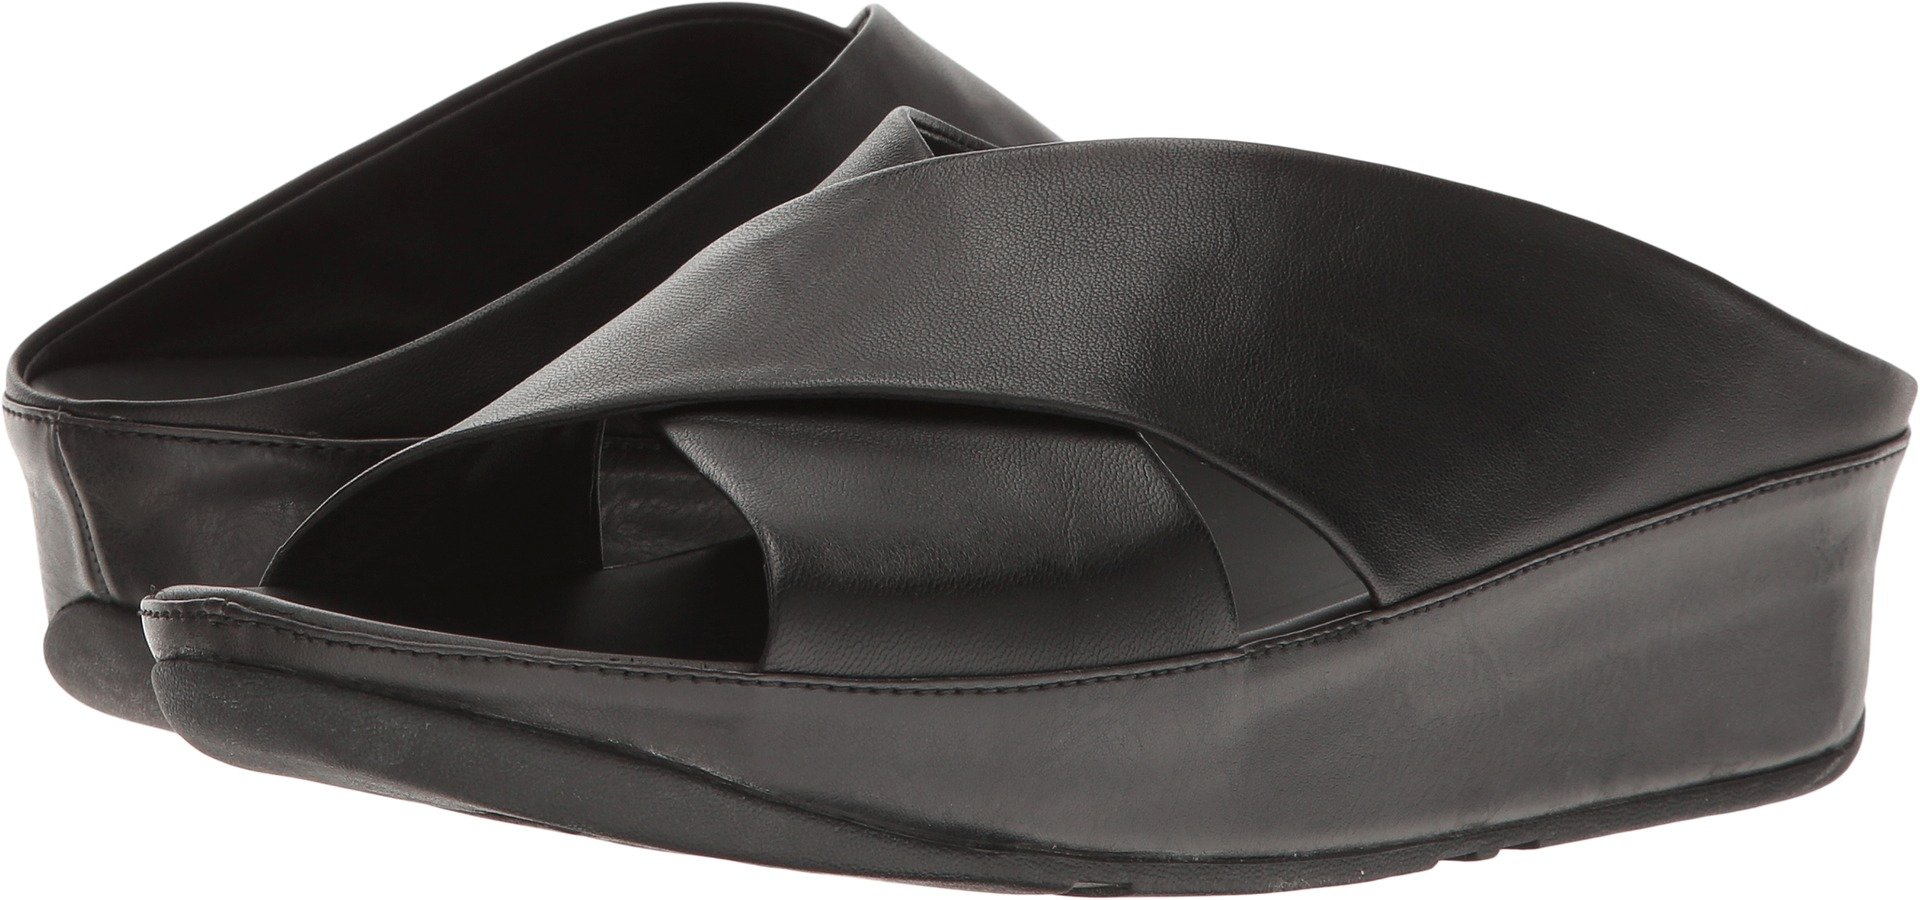 FitFlop Women's Kys Slide All Black 5 M US